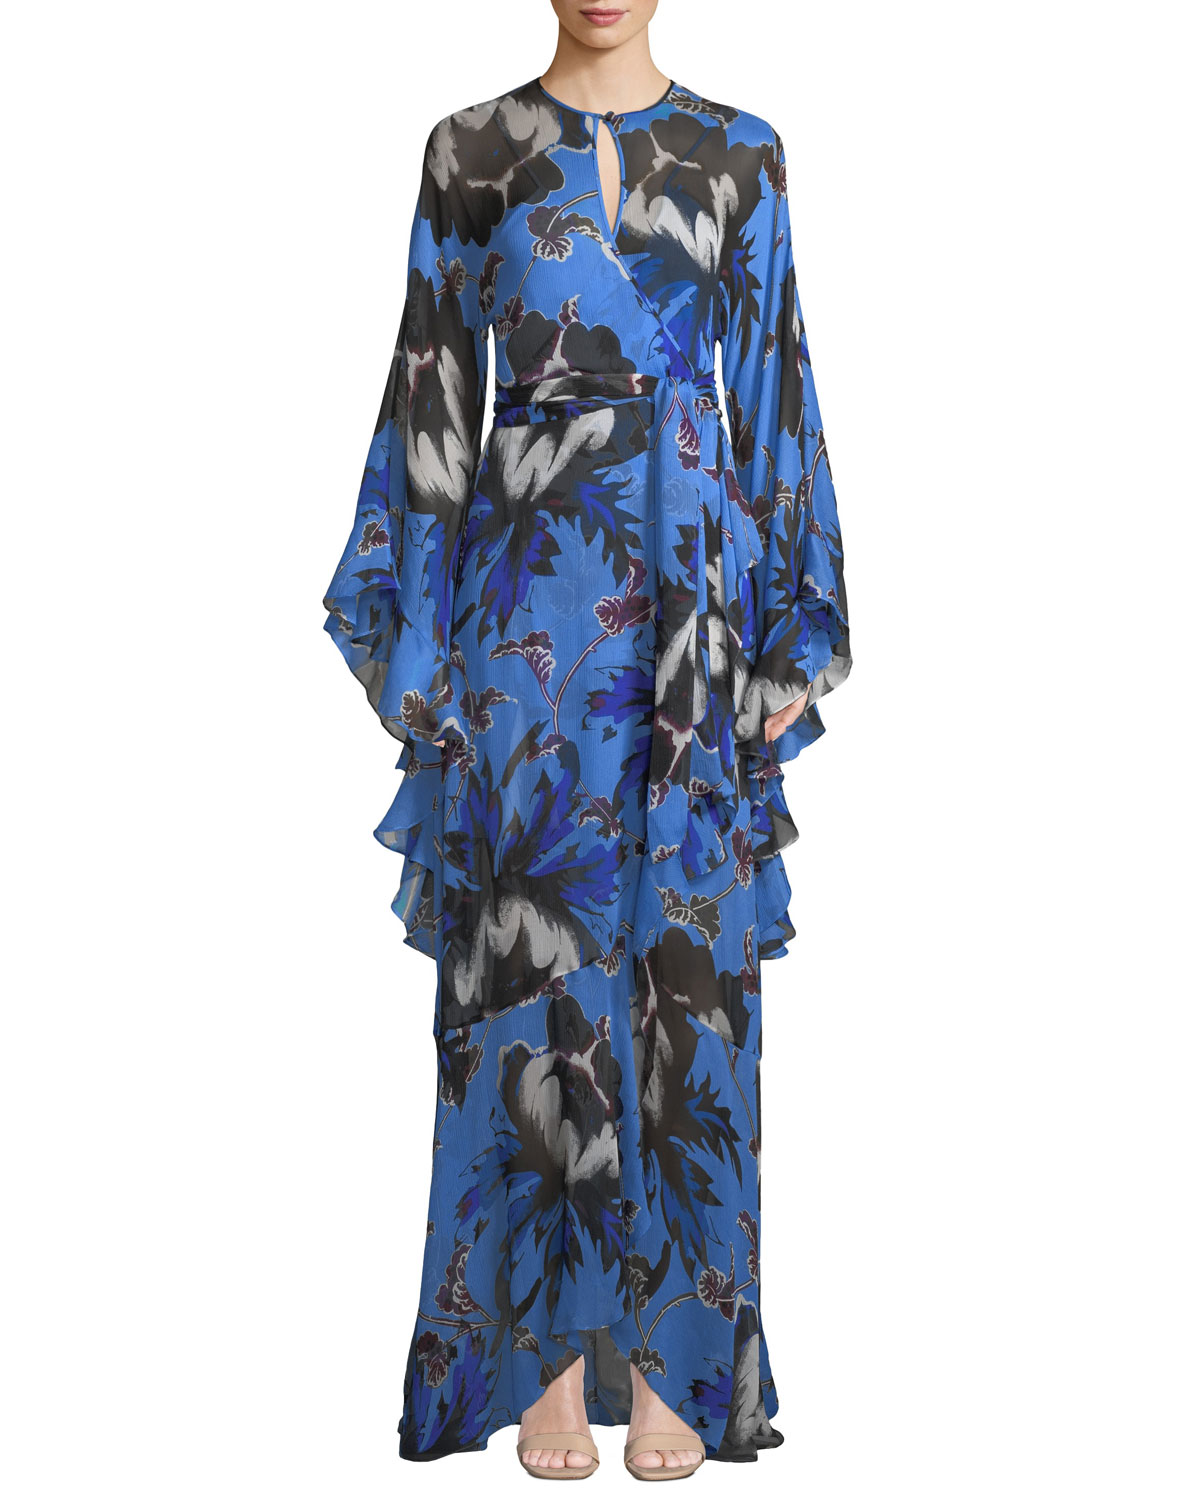 Lizella Ruffled Floral-Print Crepon Wrap Maxi Dress in Blue